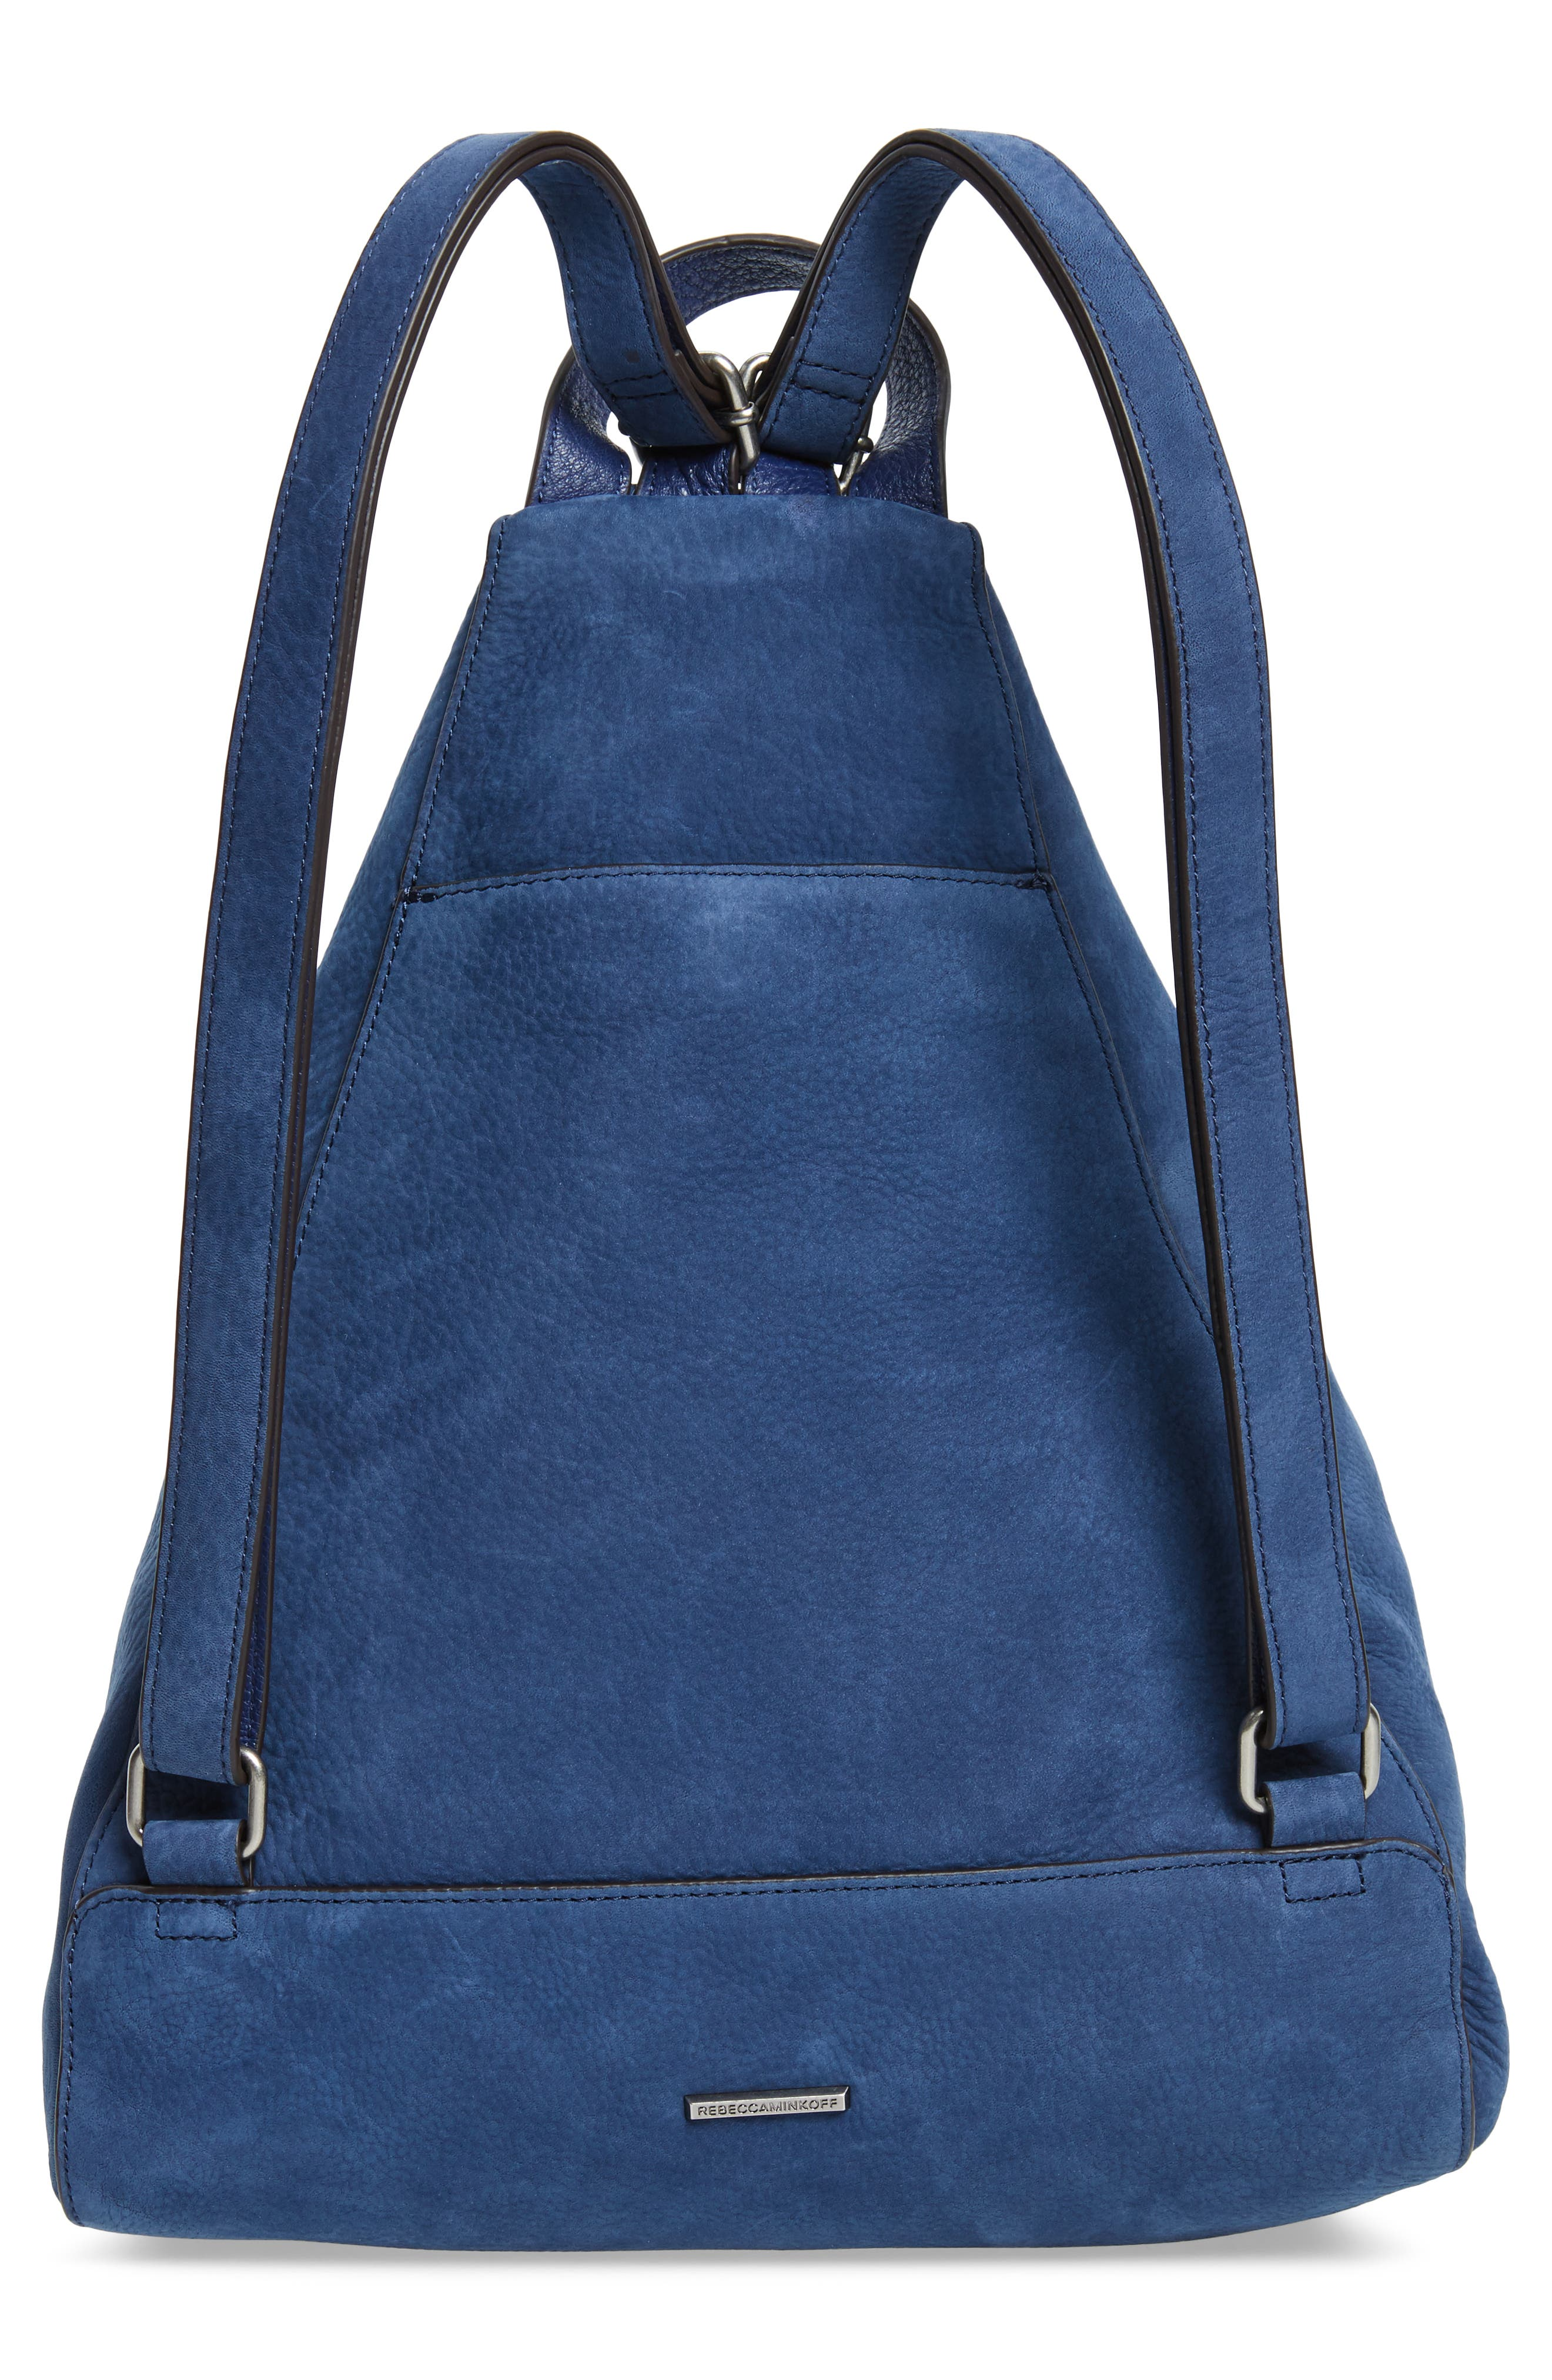 Jamie Nubuck Leather Backpack,                             Alternate thumbnail 3, color,                             True Navy